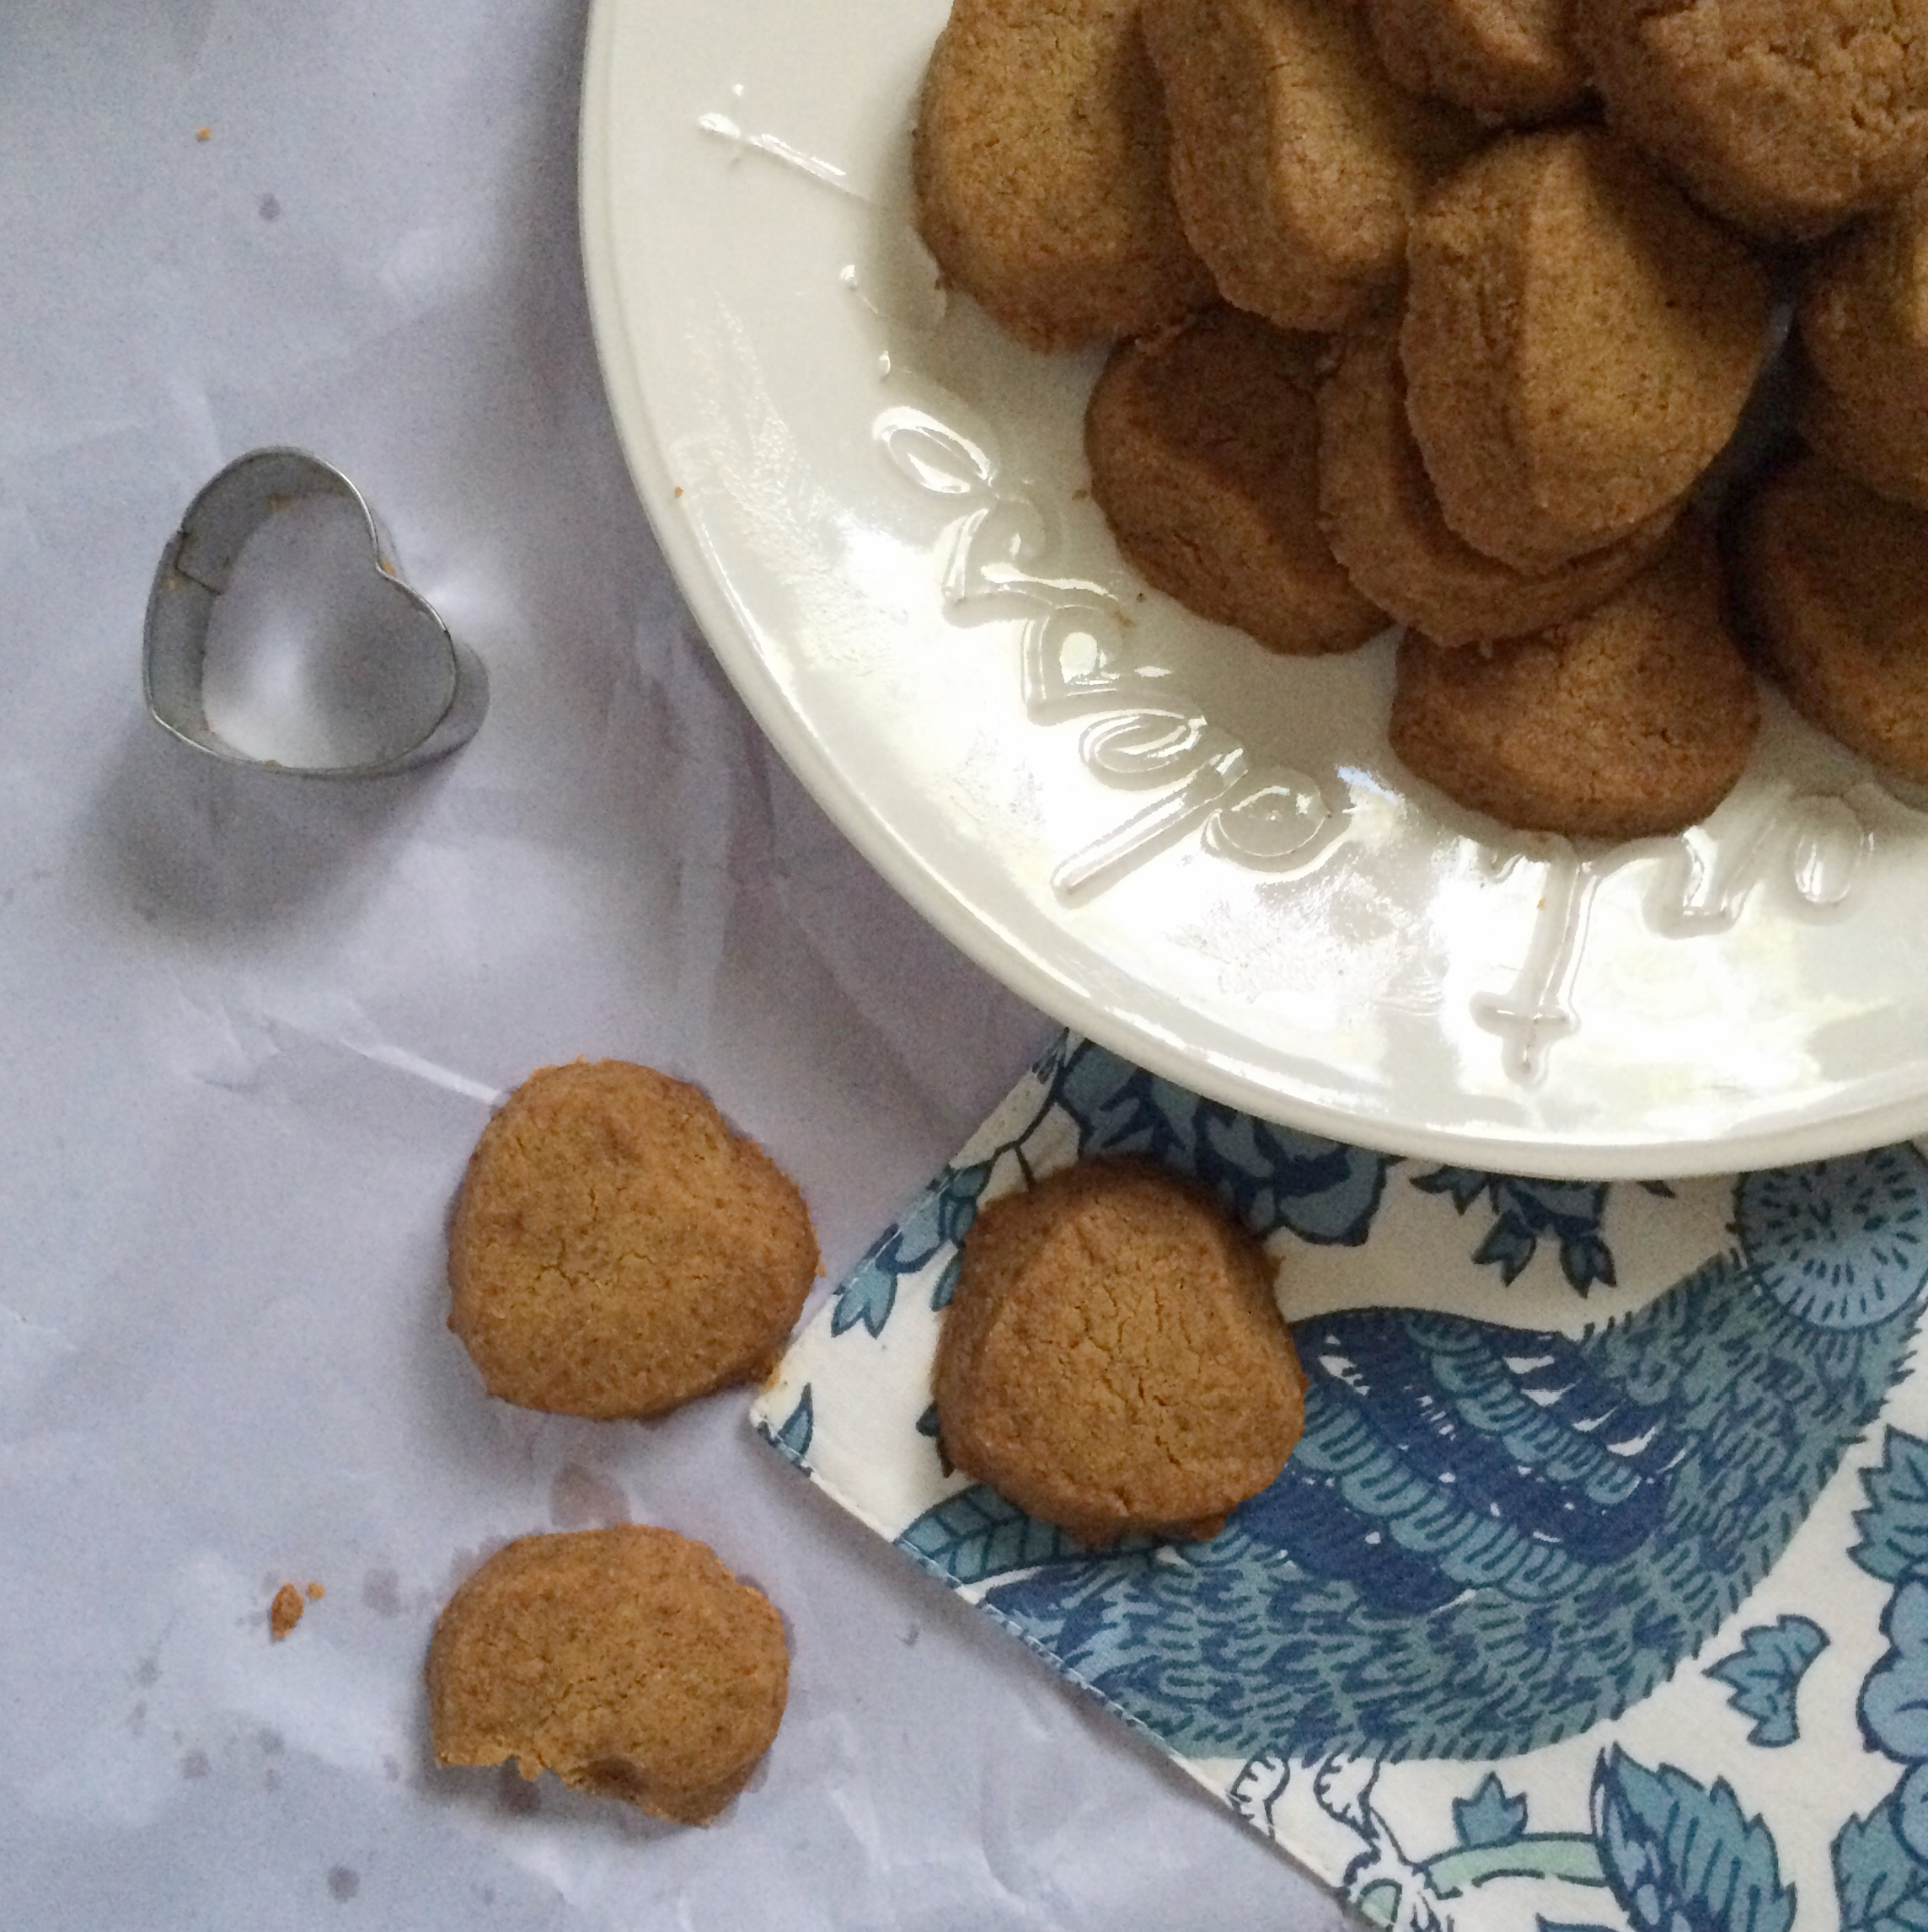 Gluten free, grain free, vegan chickpea flour cardamom cookies - yummy with minimal ingredients!